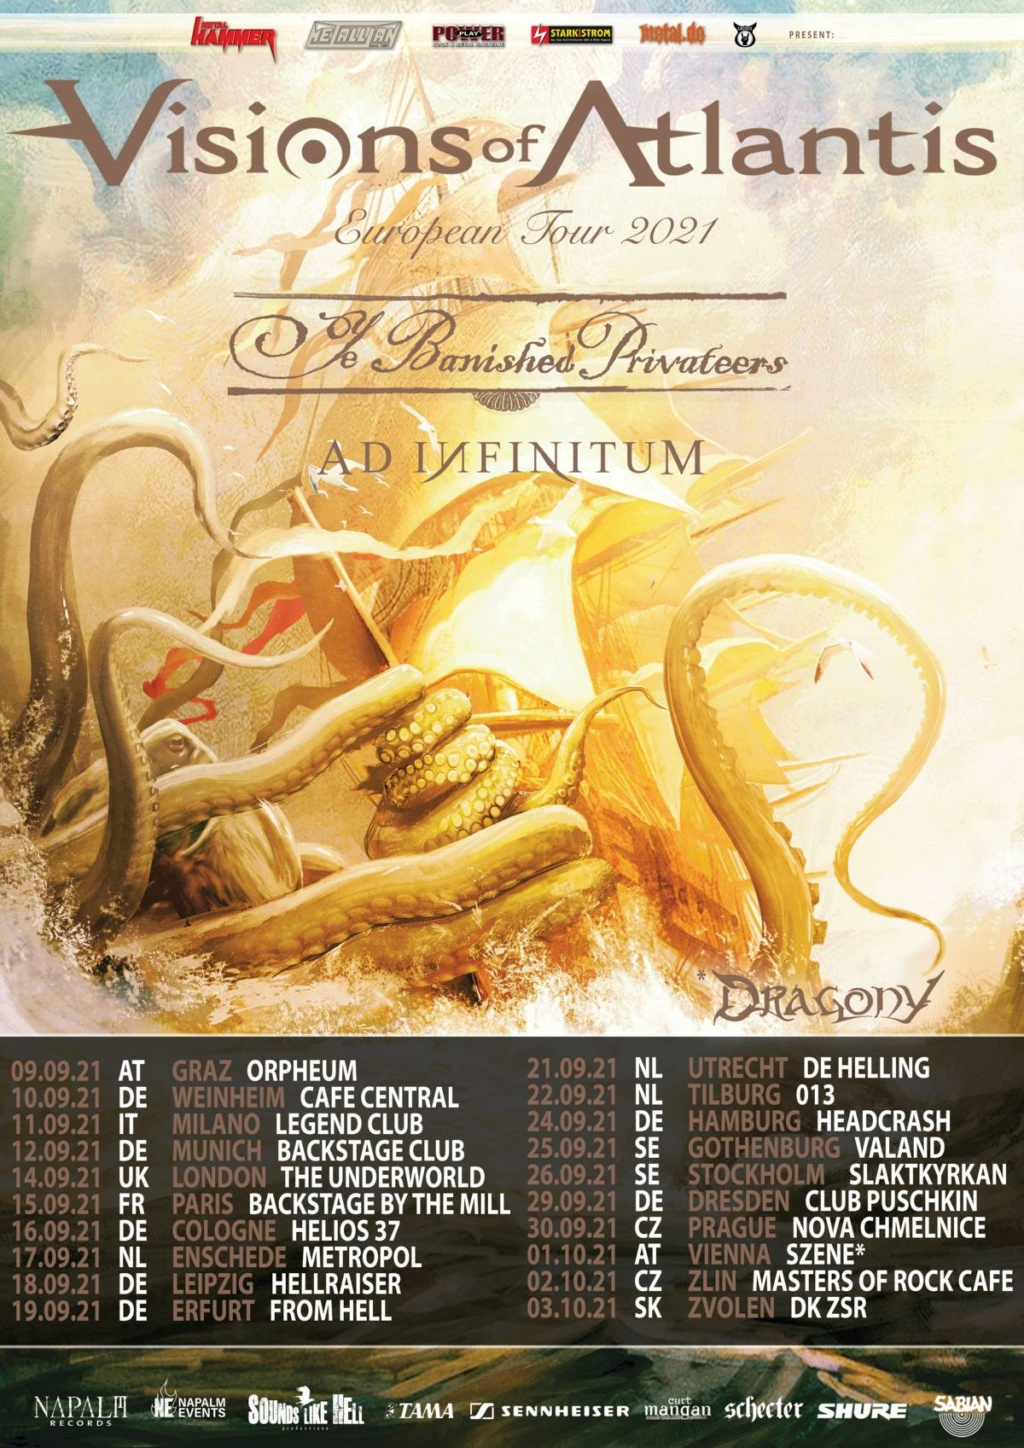 VISIONS OF ATLANTIS live in Europe: Aab148